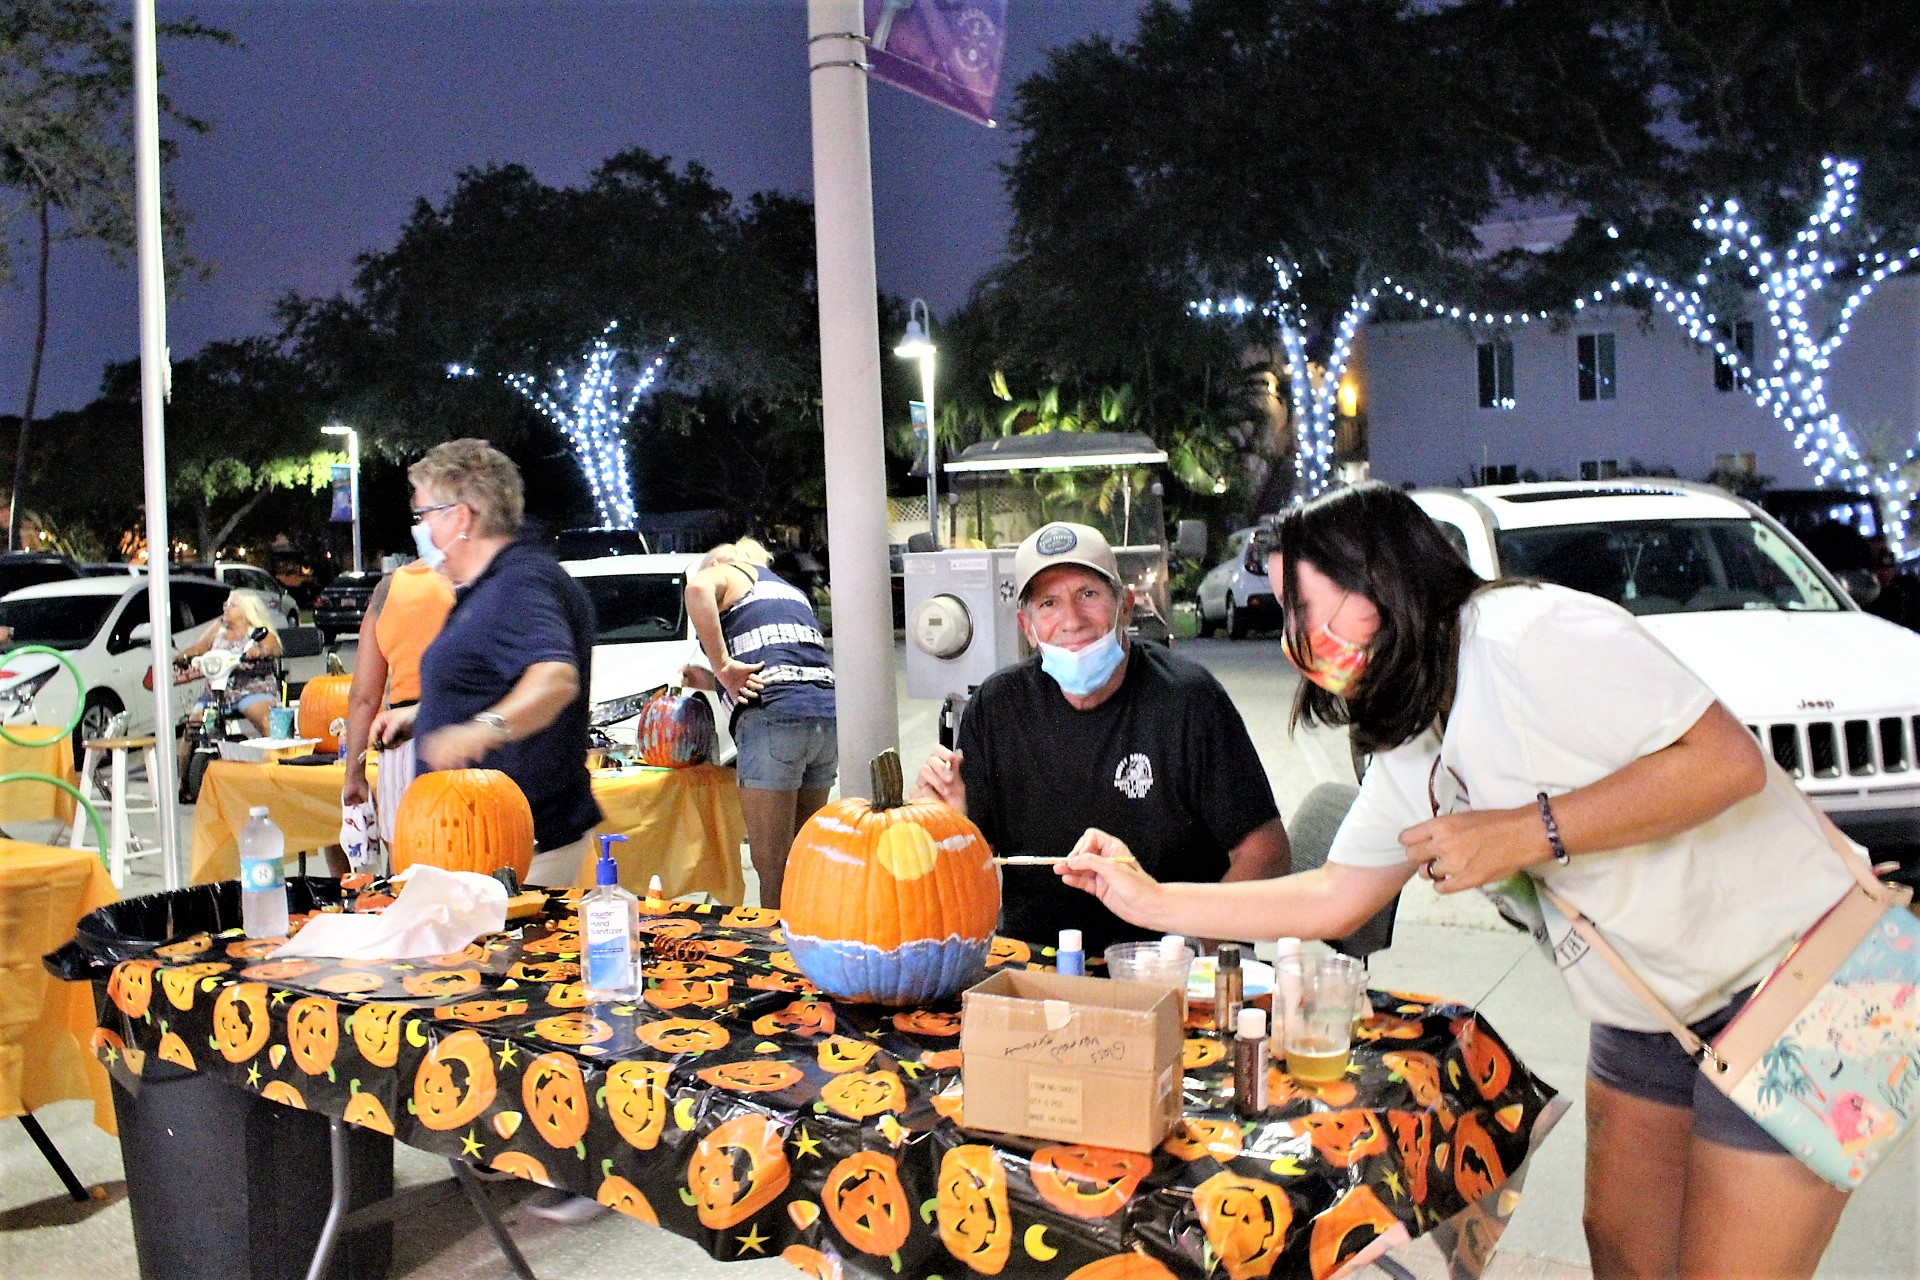 A group of people at an outdoor table at night decorating pumpkins over a pumpkin table cloth.